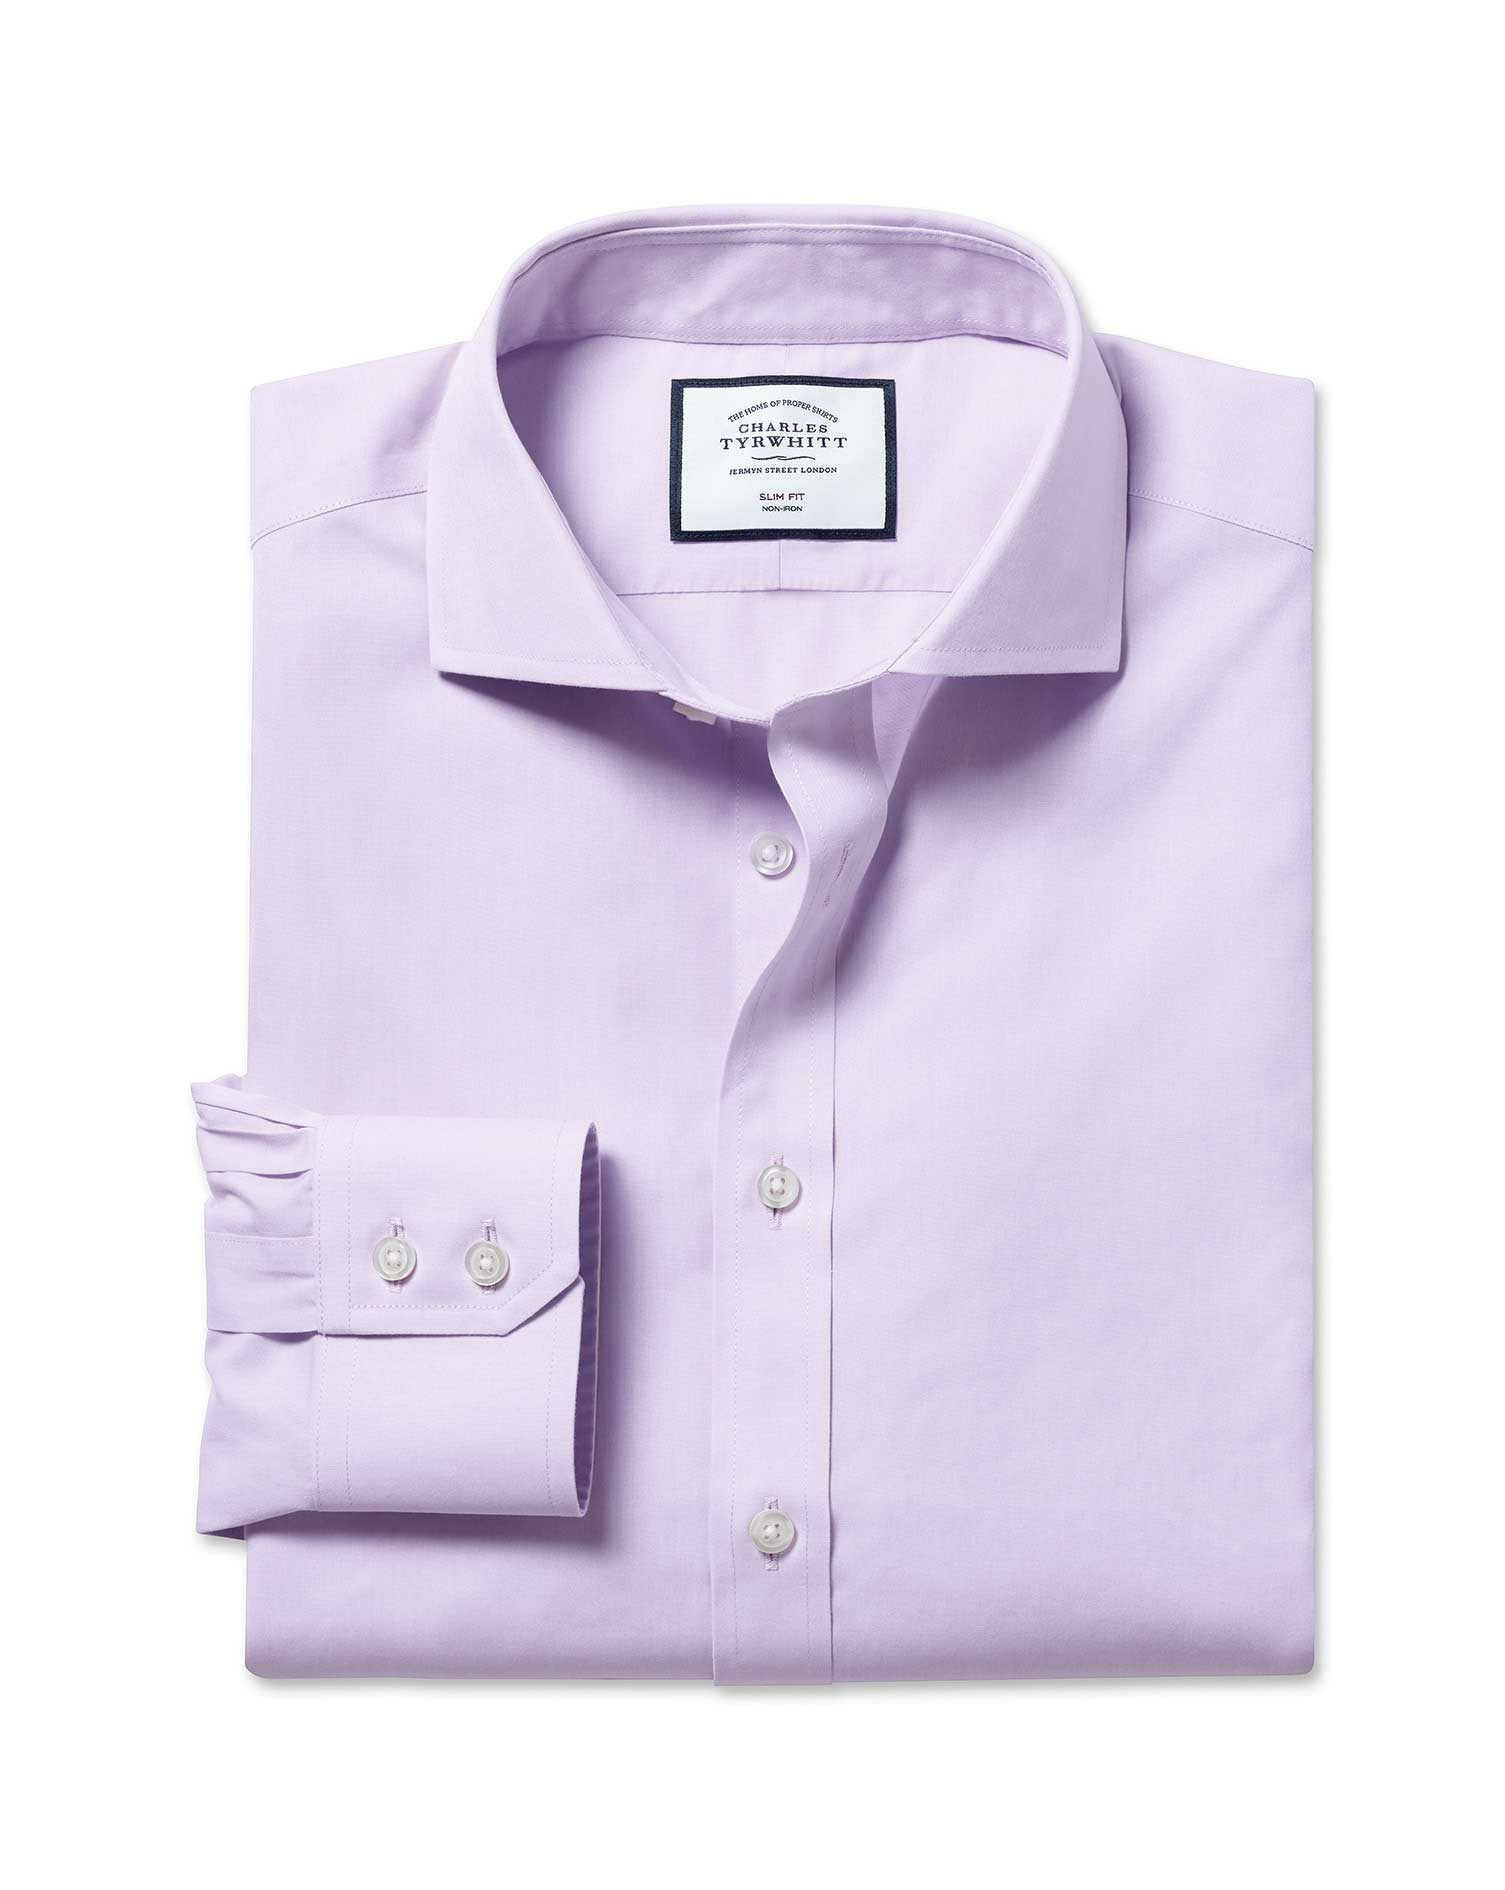 Slim Fit Non-Iron Cutaway Collar Poplin Lilac Cotton Formal Shirt Double Cuff Size 17/36 by Charles